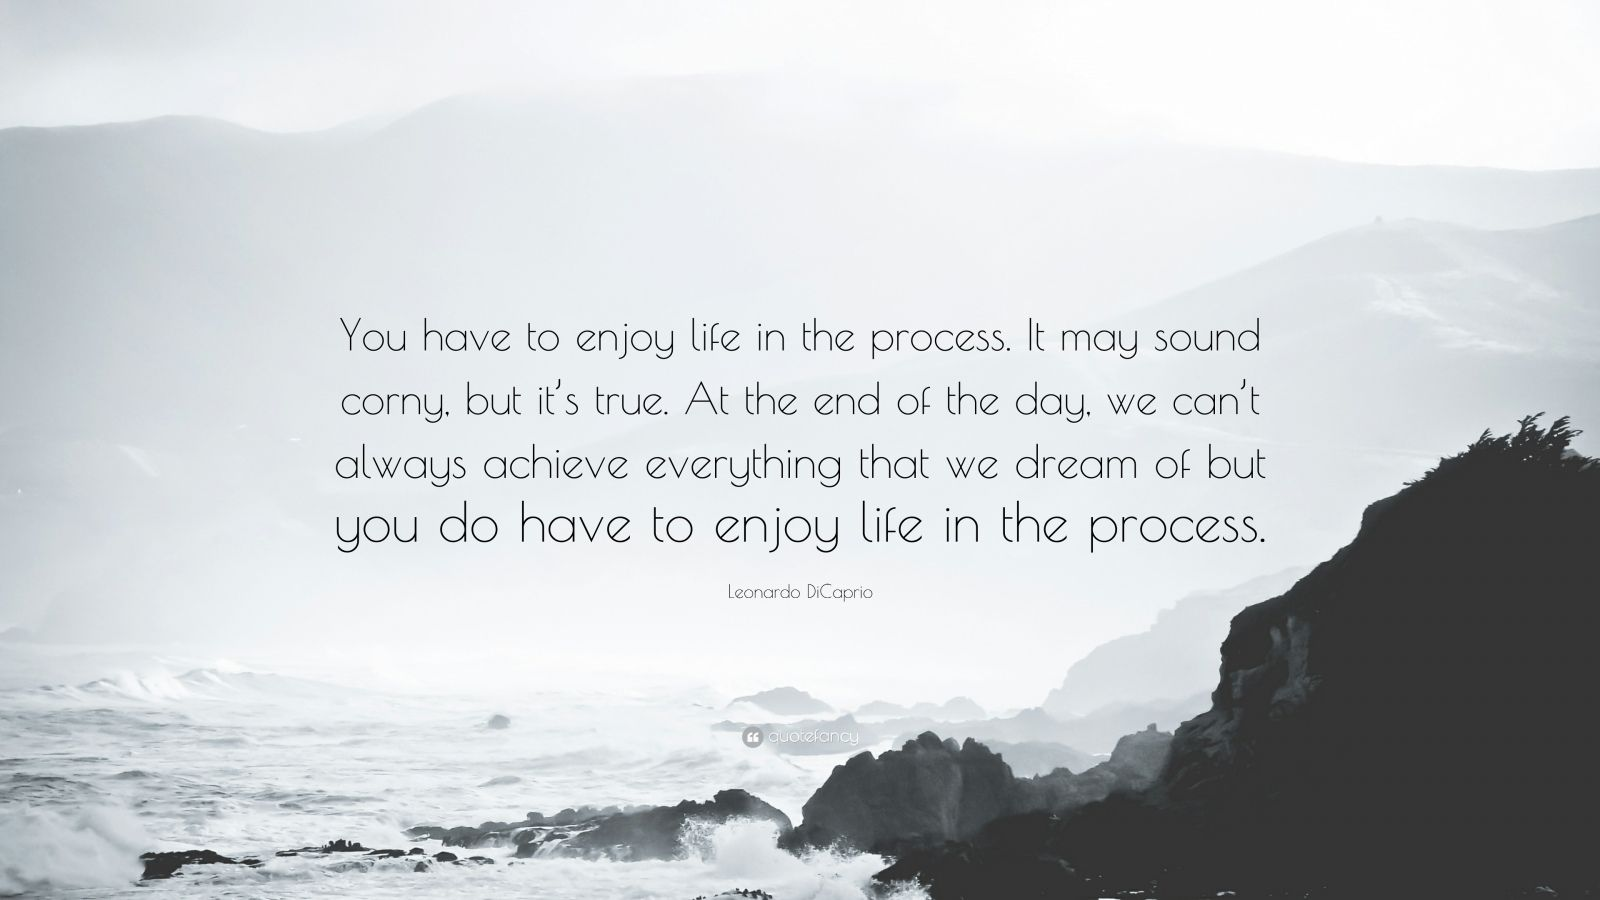 """Leonardo DiCaprio Quote: """"You have to enjoy life in the process. It may sound corny, but it's true. At the end of the day, we can't always achieve everything that we dream of but you do have to enjoy life in the process."""""""